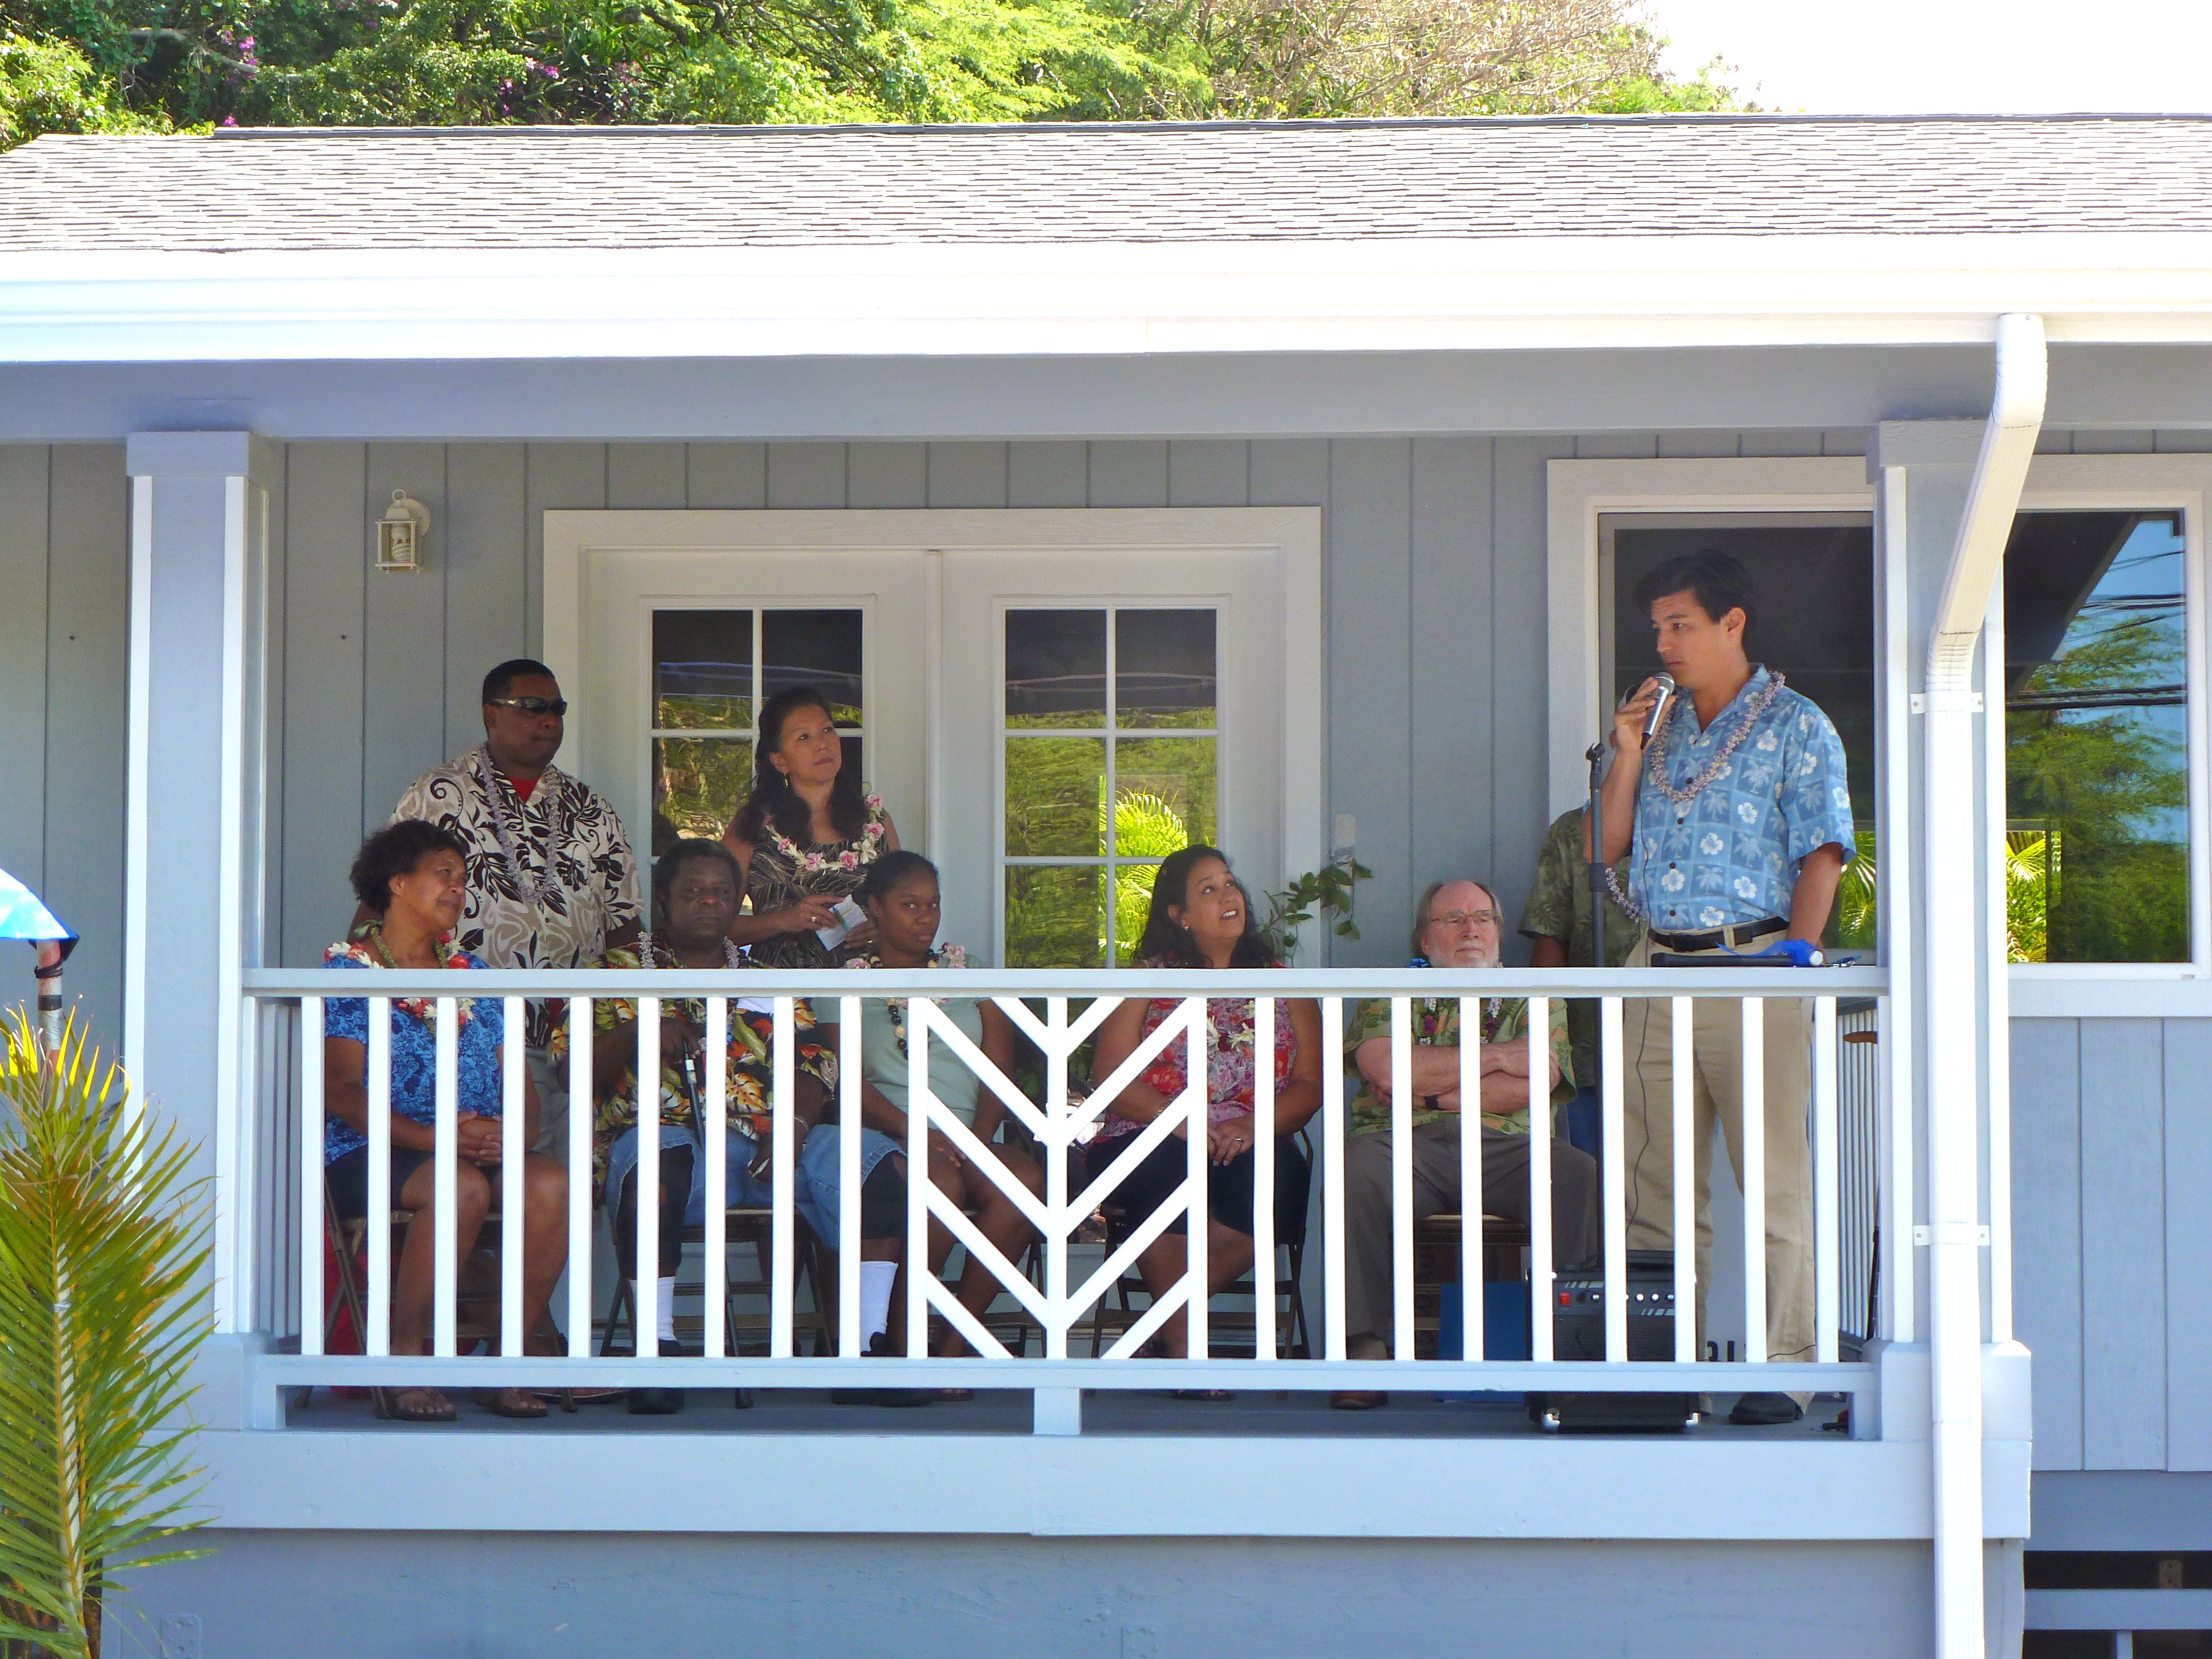 Andrew Yani, principal and founder, Bonterra Solar, speaks on Bonterra Solar's commitment to provide a new solar hot water heating system to every Honolulu Habitat for Humanity Home to help families reduce their electricity costs while helping to move Hawaii toward a clean energy future.